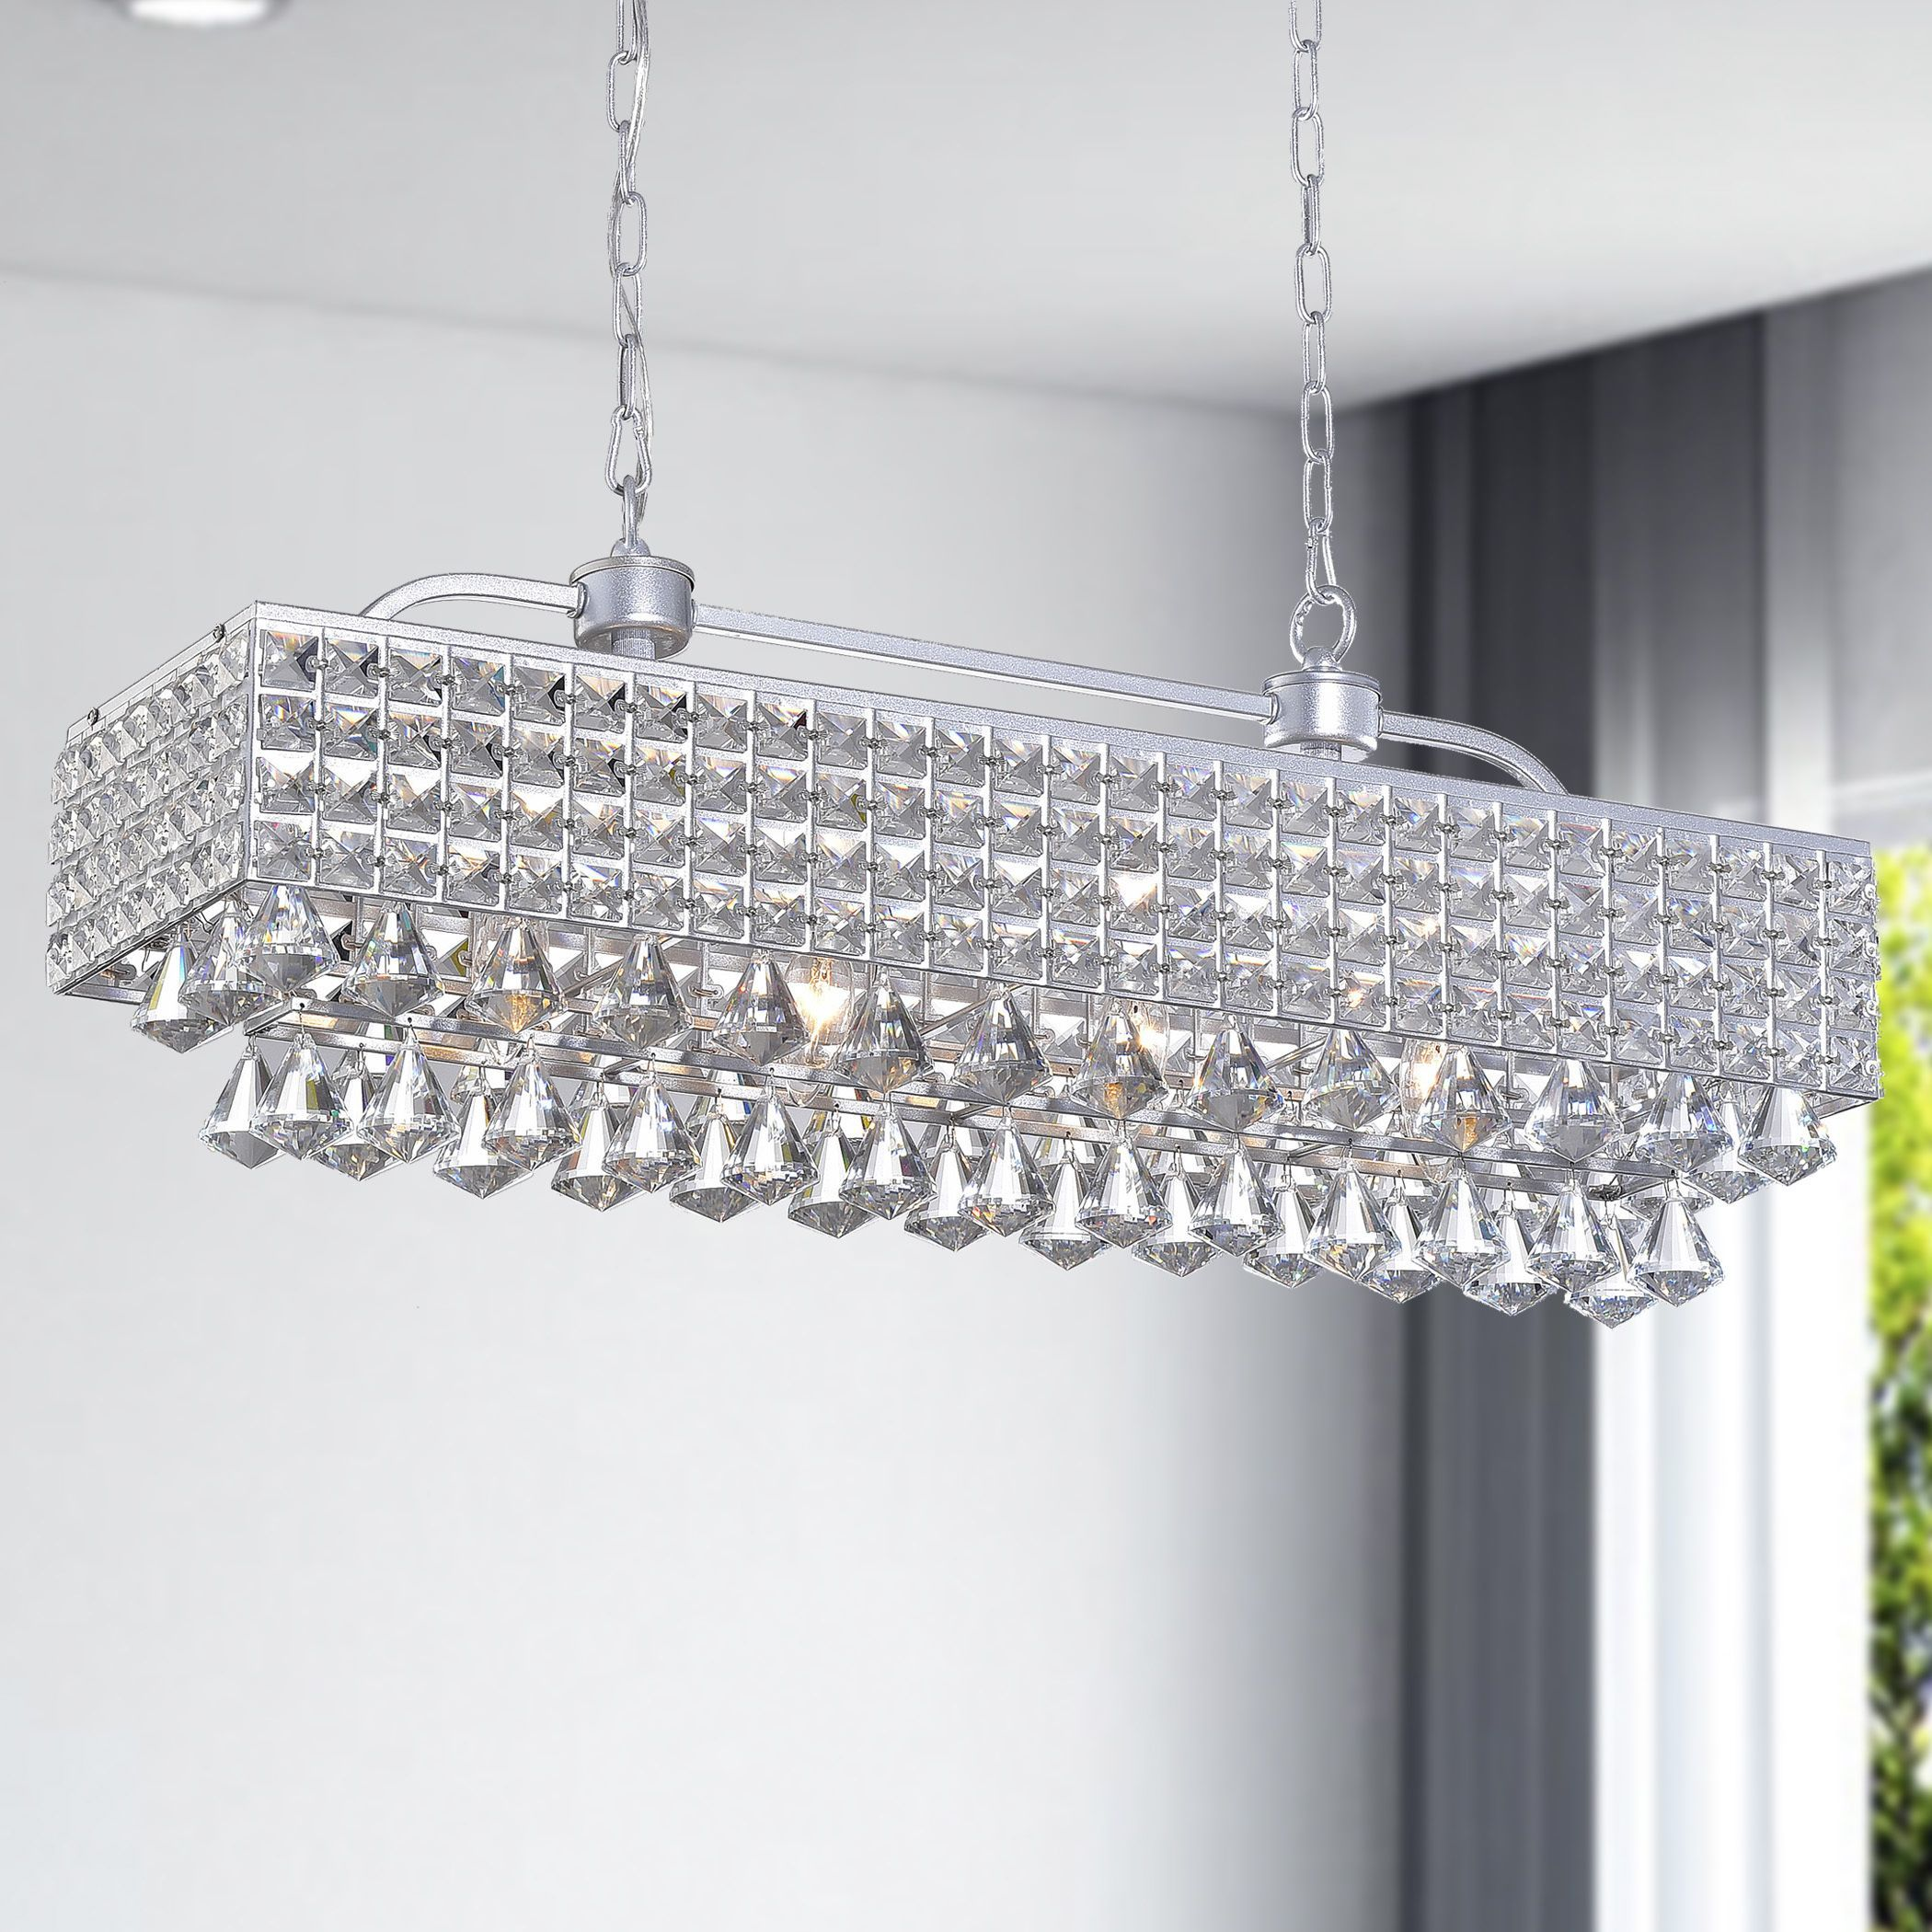 Light up your home with this jolie silver 5 light rectangular light up your home with this jolie silver 5 light rectangular crystal chandelier this aloadofball Images